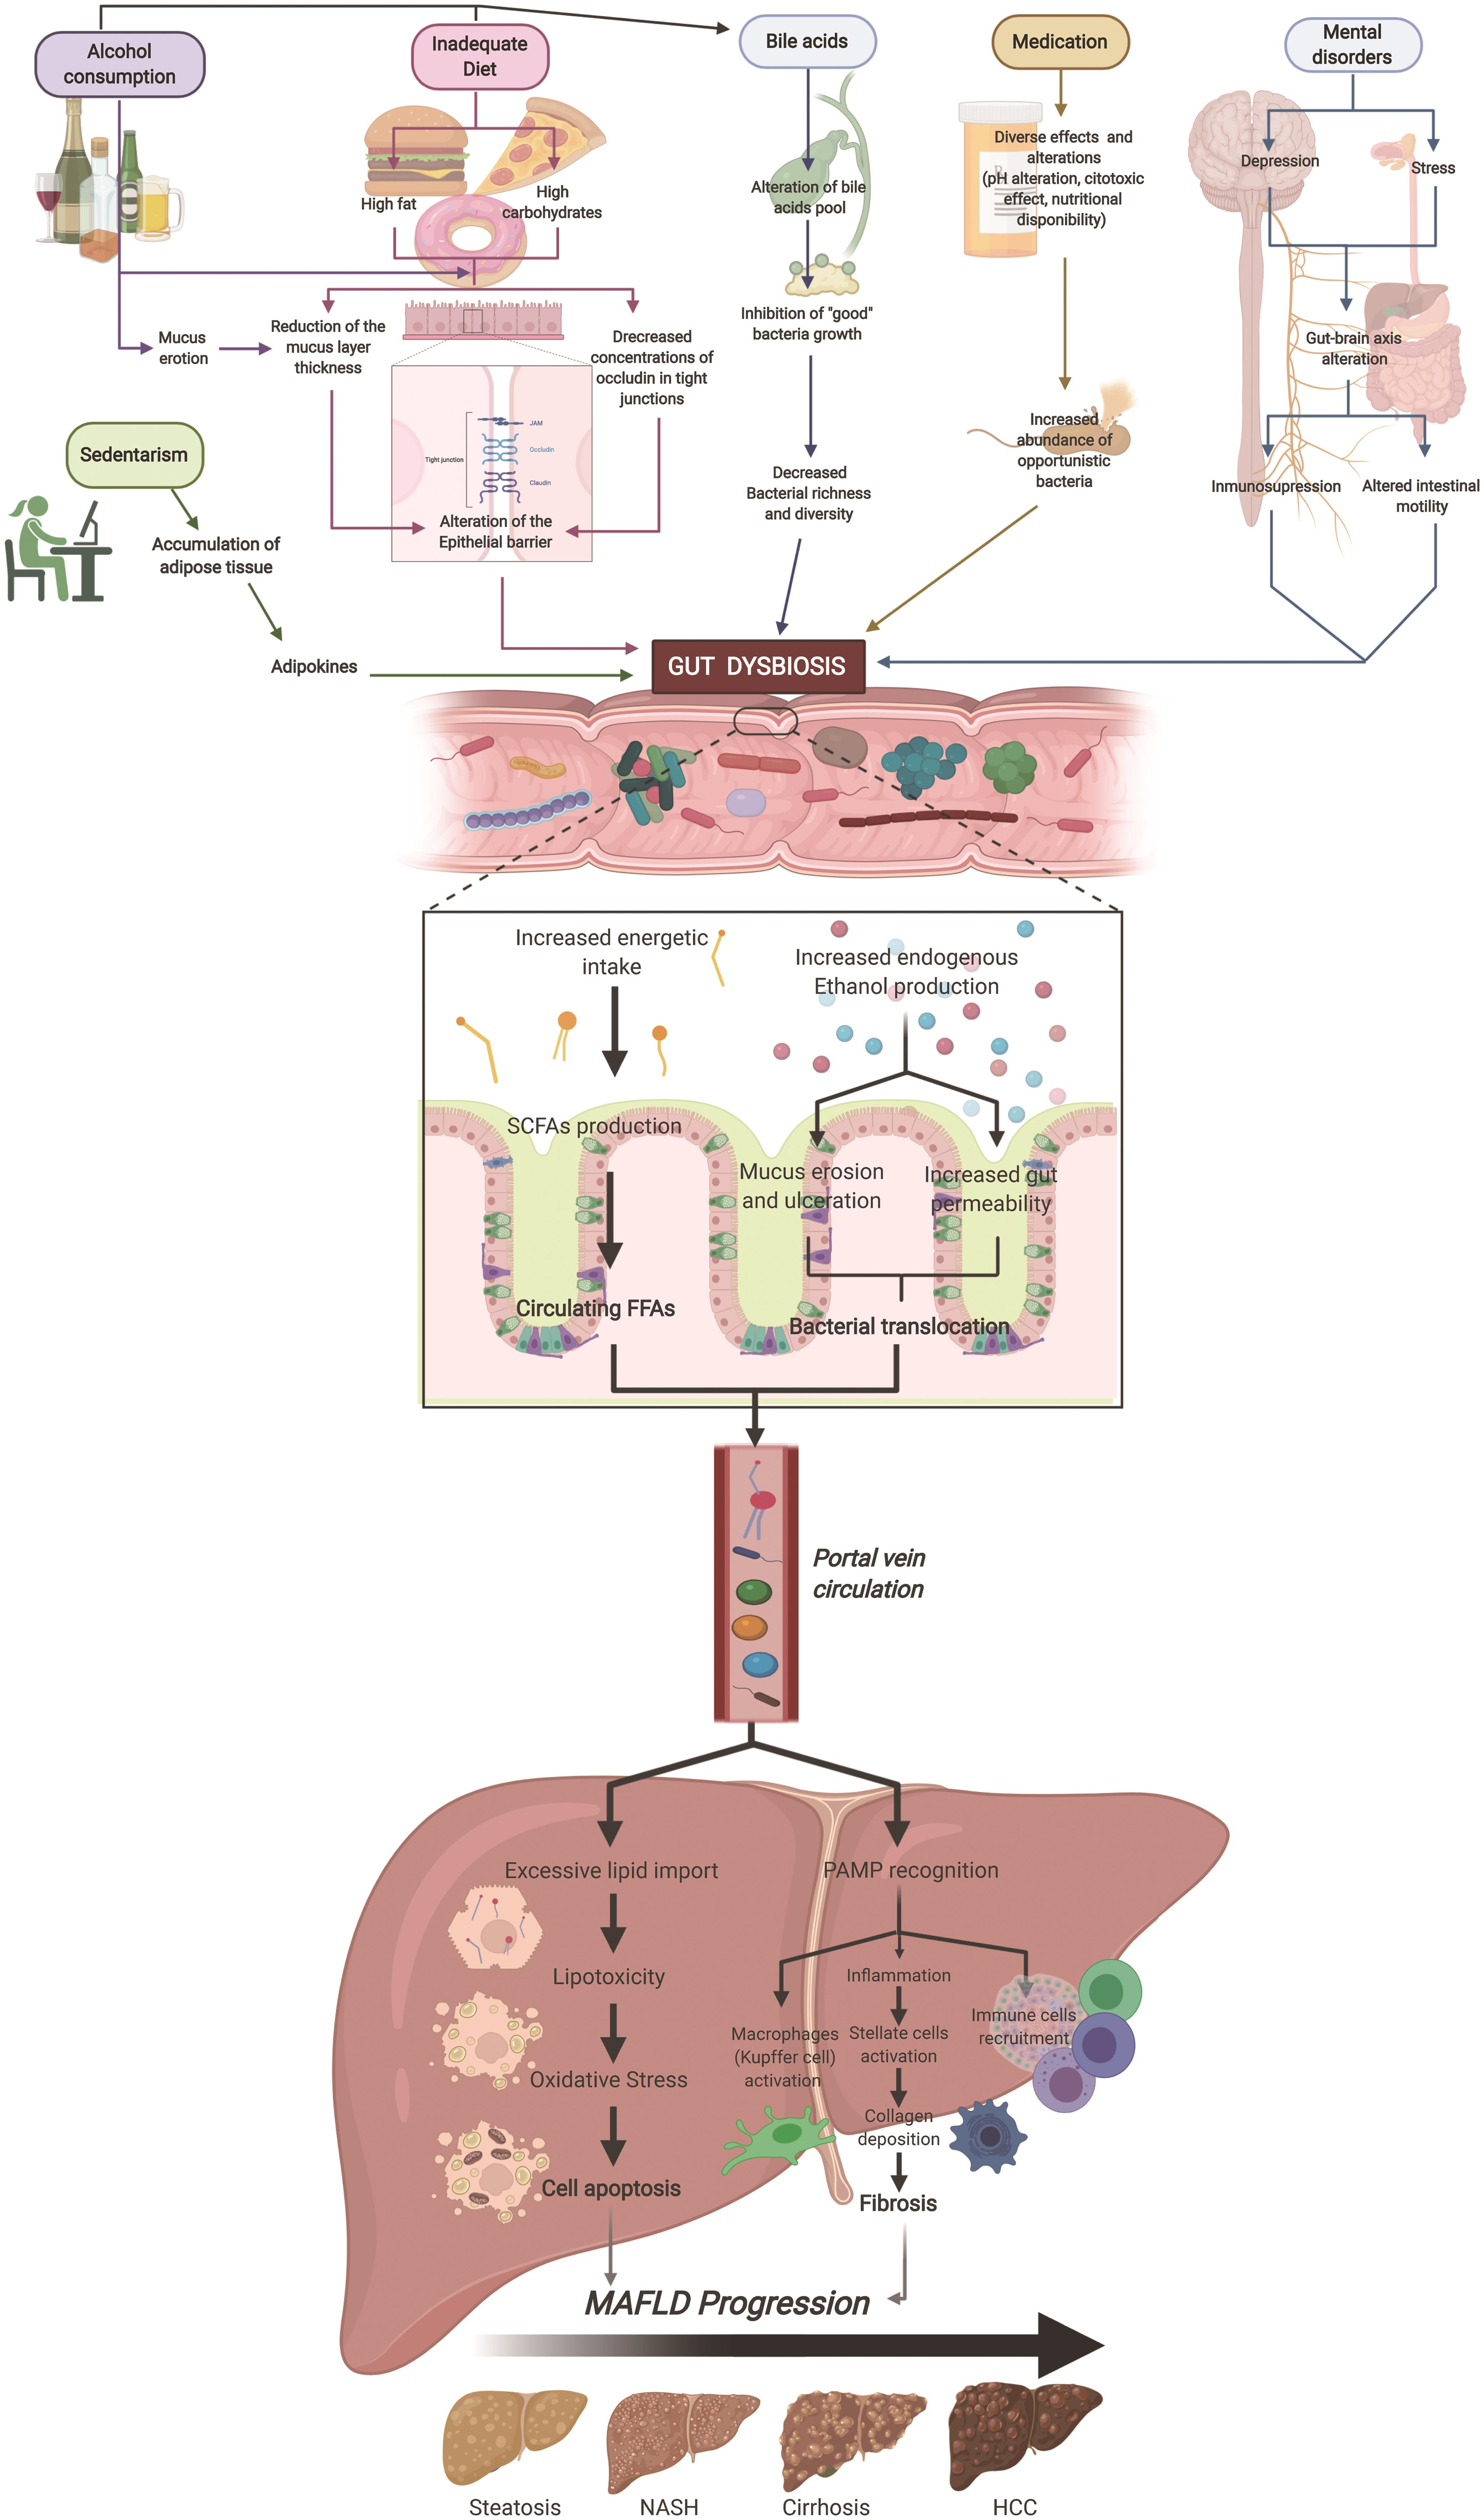 Factors that promote gut dysbiosis and its effect on MAFLD.